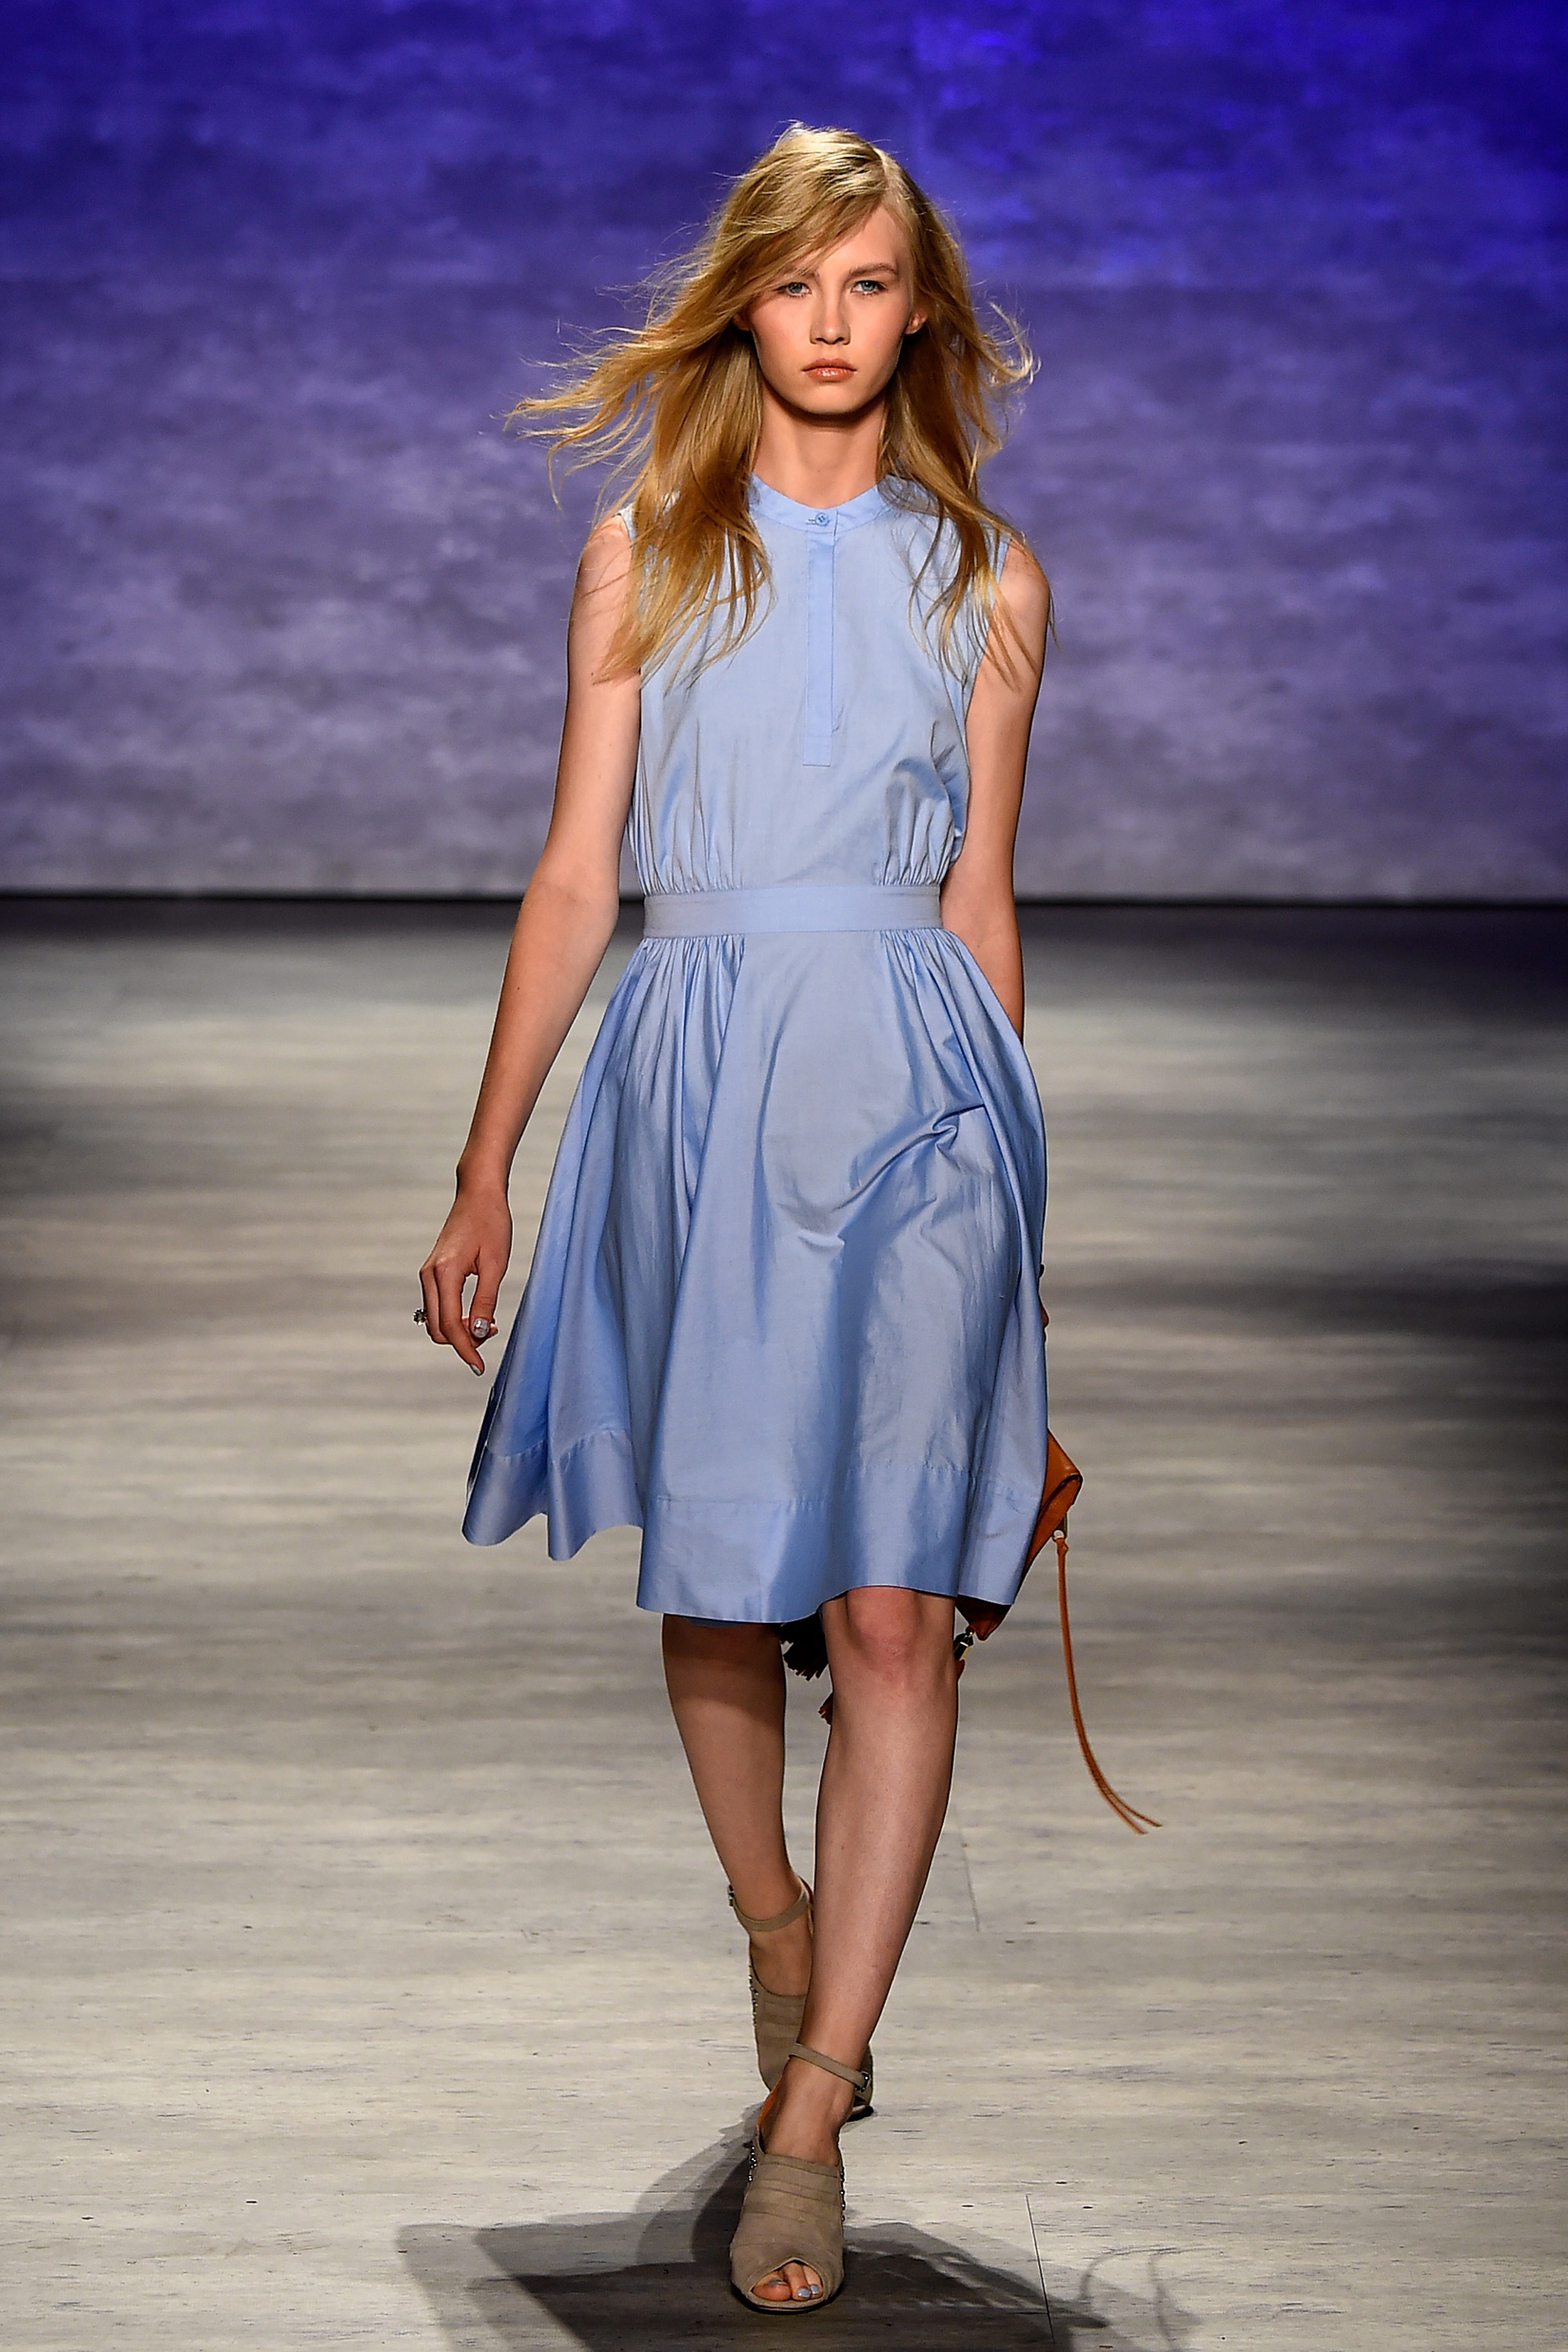 Must-see outfits from Rebecca Minkoff's spring collection 8